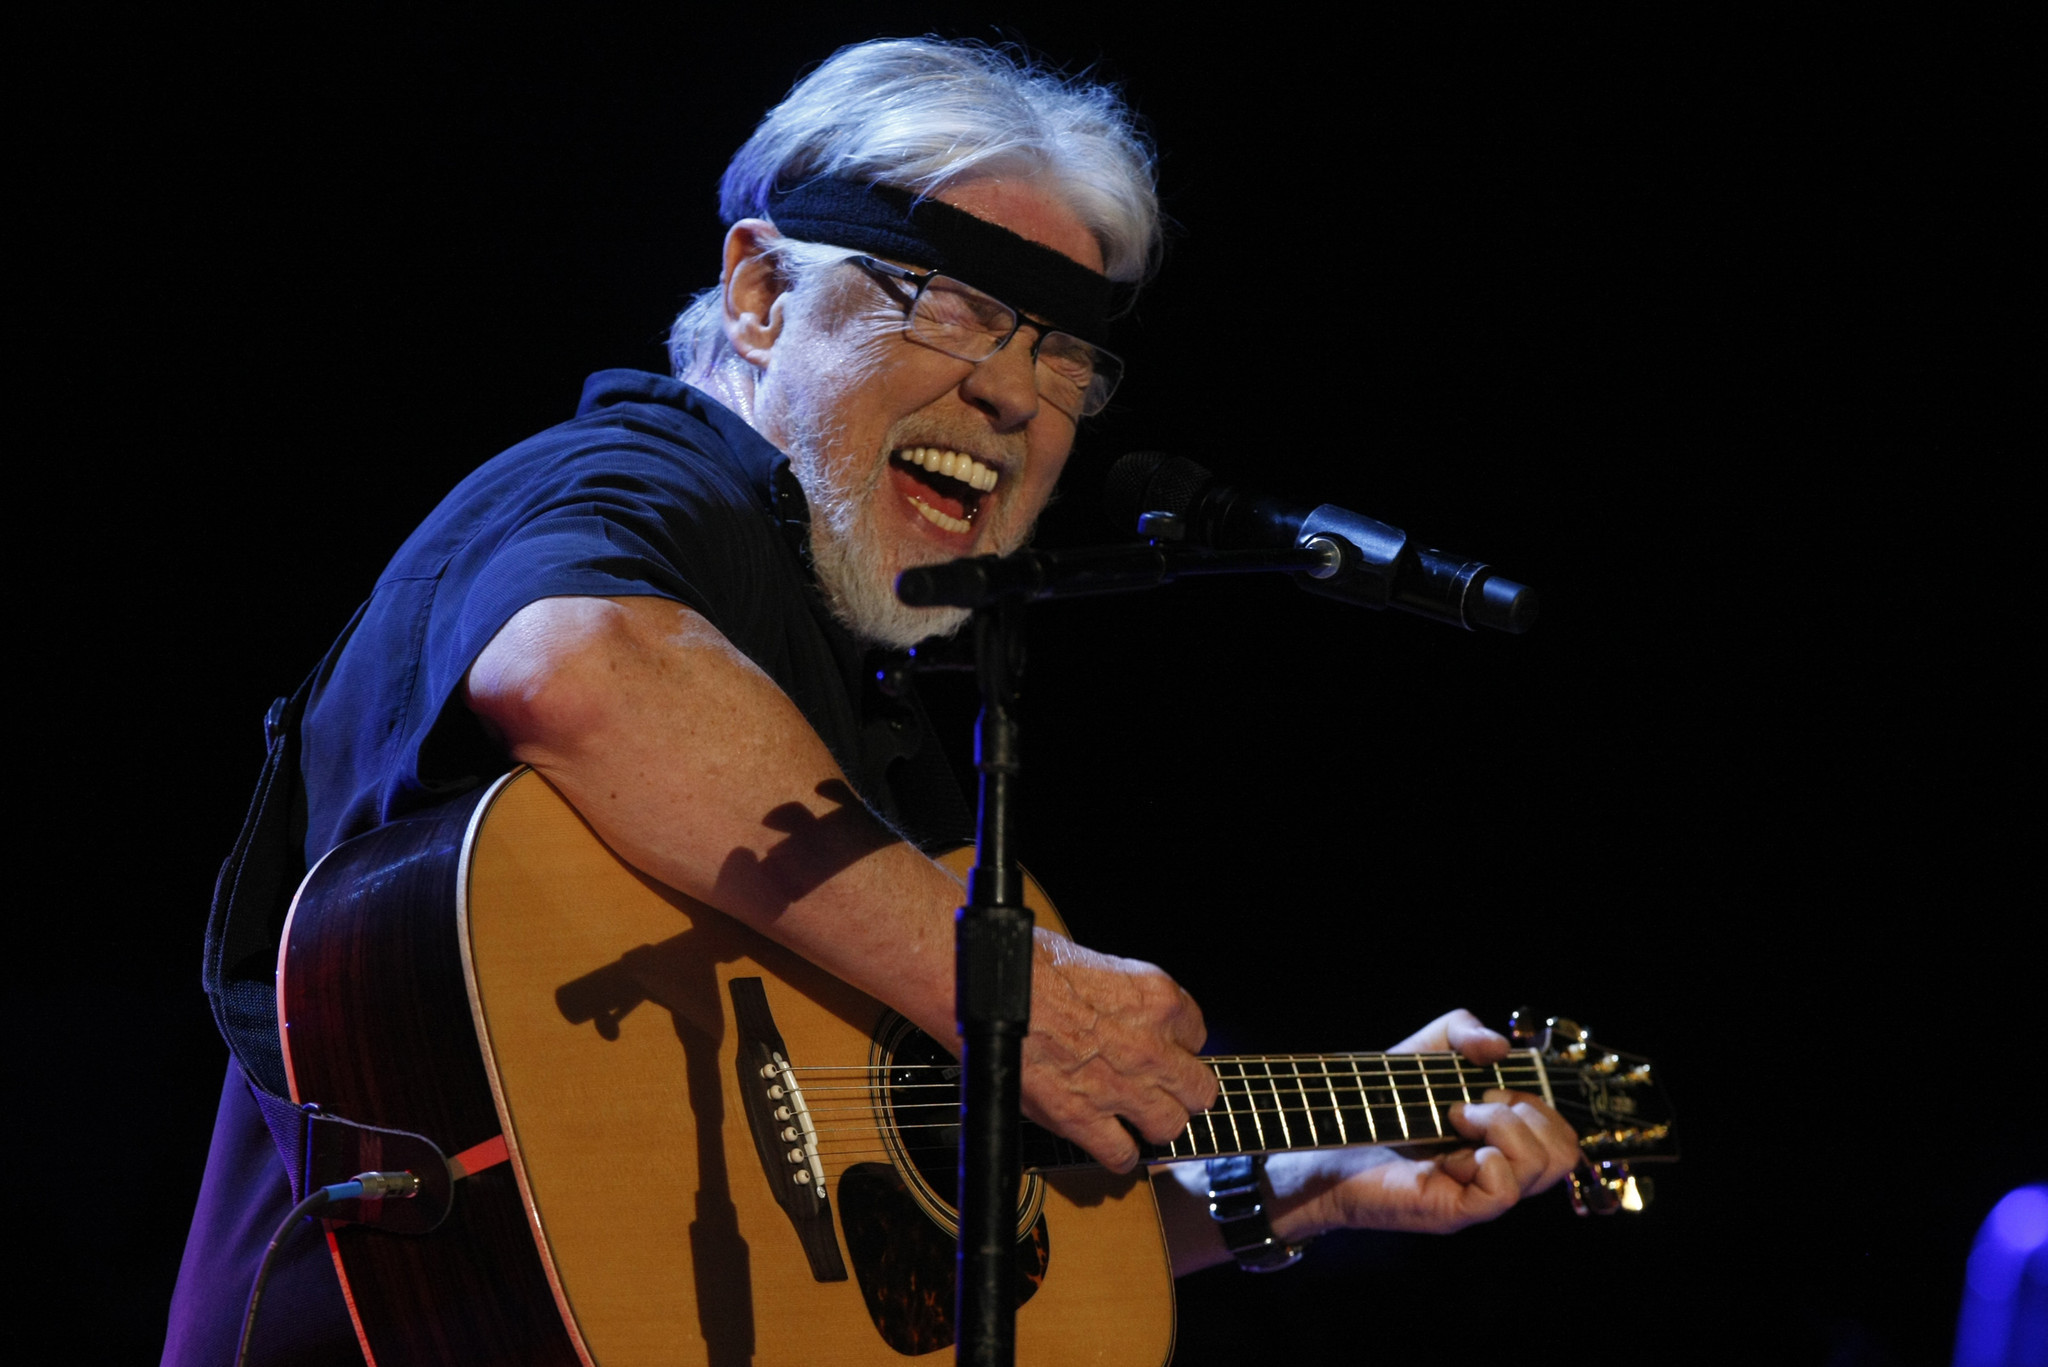 Bob Seger turns a page with a Nashville sound and liberal lyrics